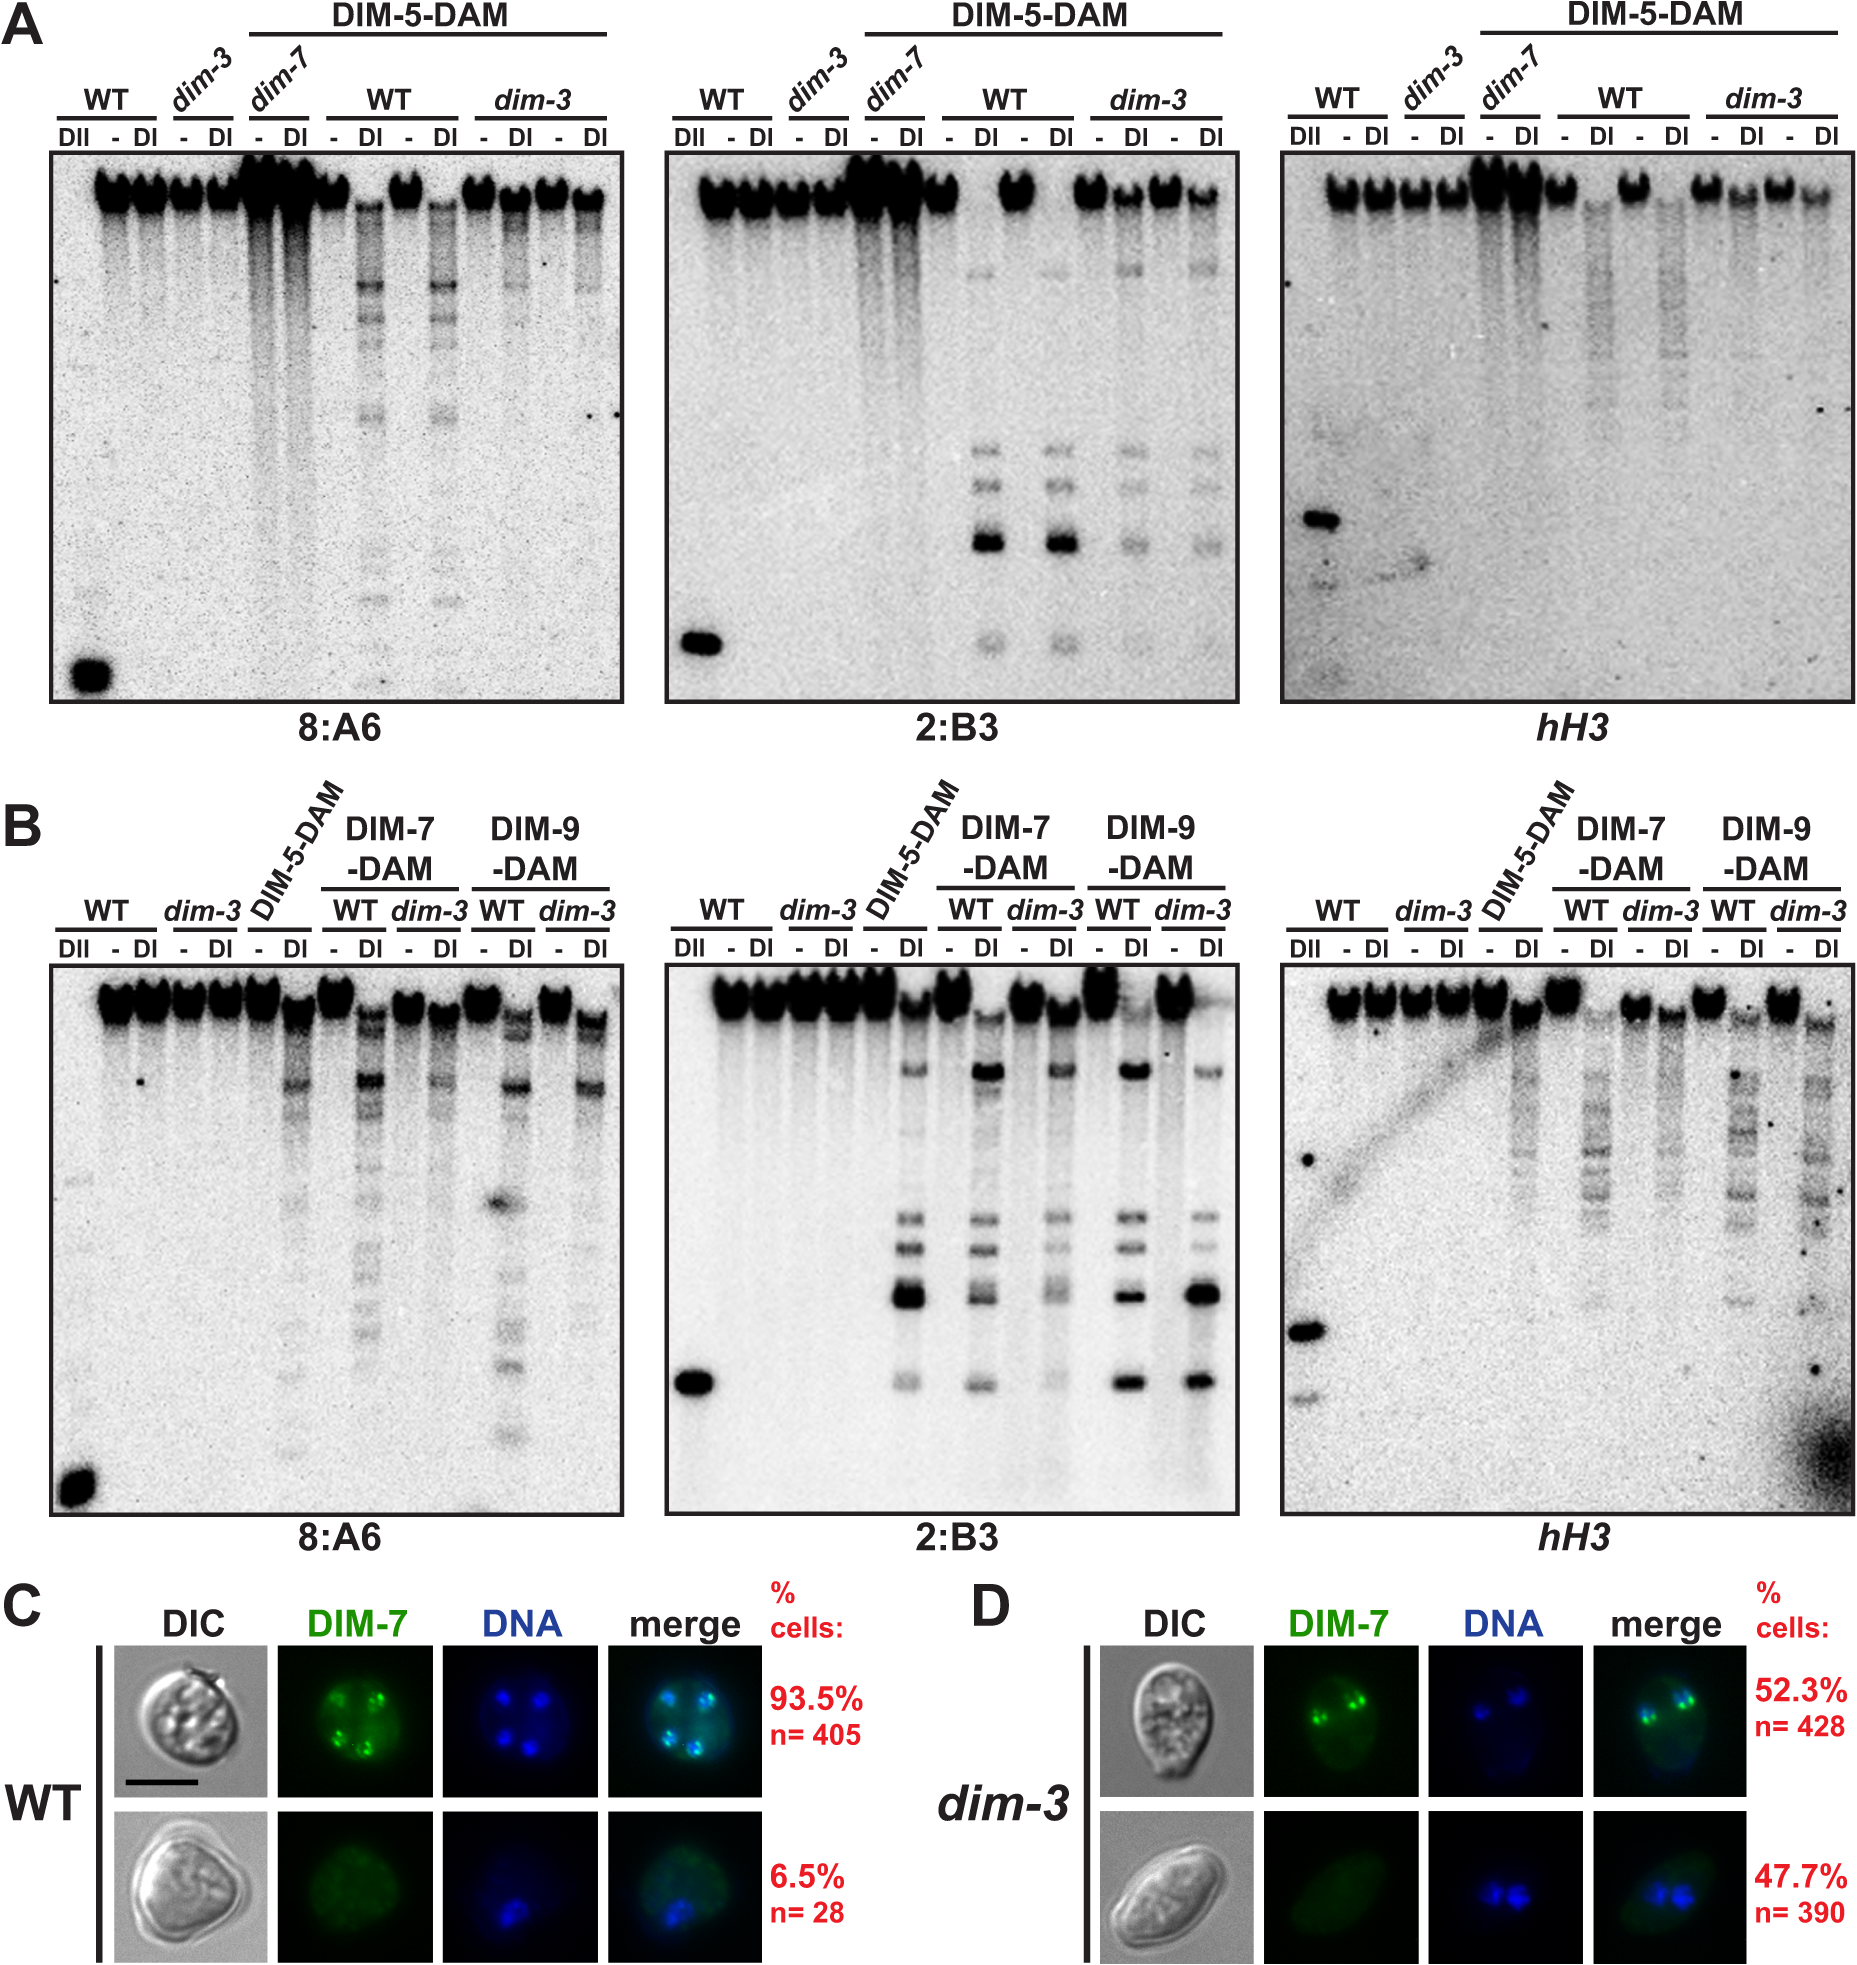 DIM-5 and DIM-7 are mislocalized from heterochromatin in a <i>dim-3</i> strain.